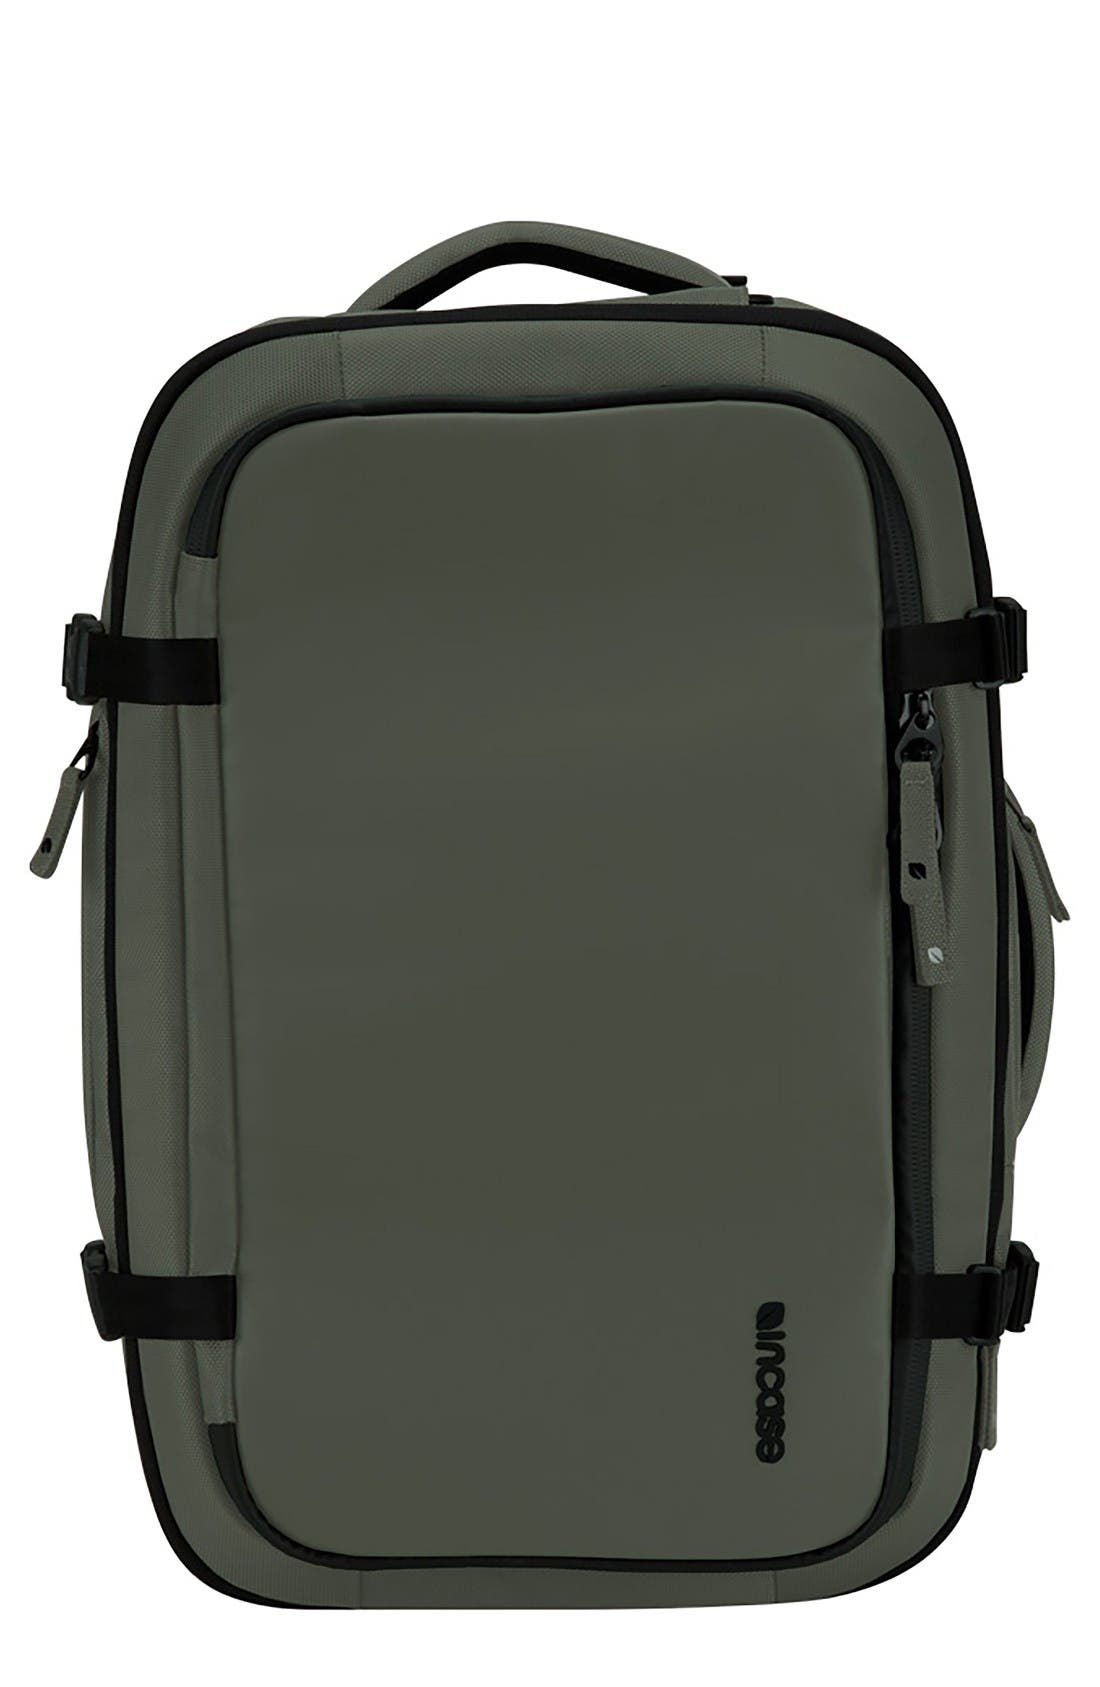 TRACTO Convertible Backpack,                             Main thumbnail 1, color,                             Anthracite